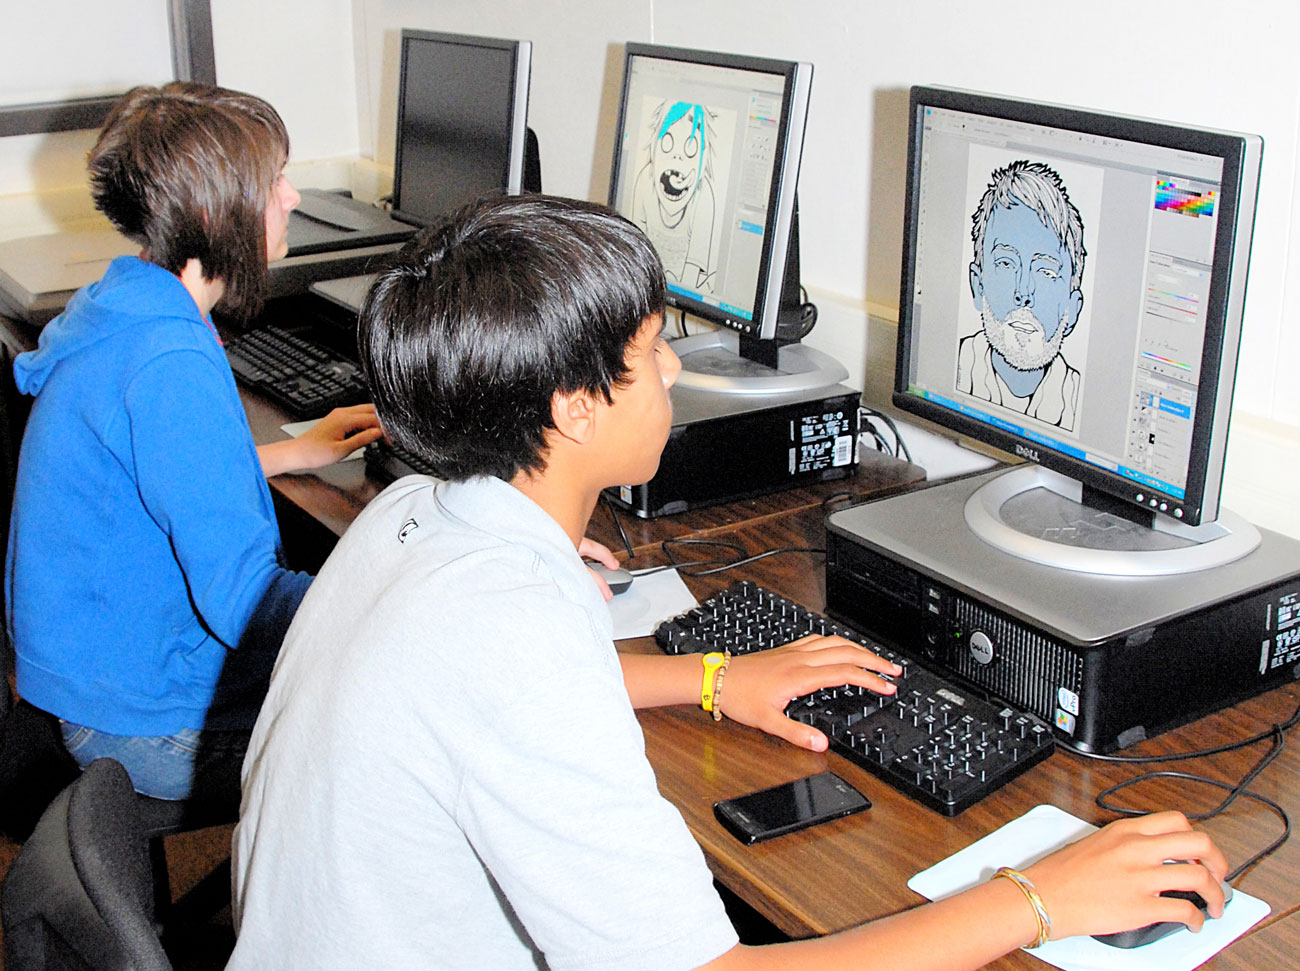 Graphic arts students work on computers